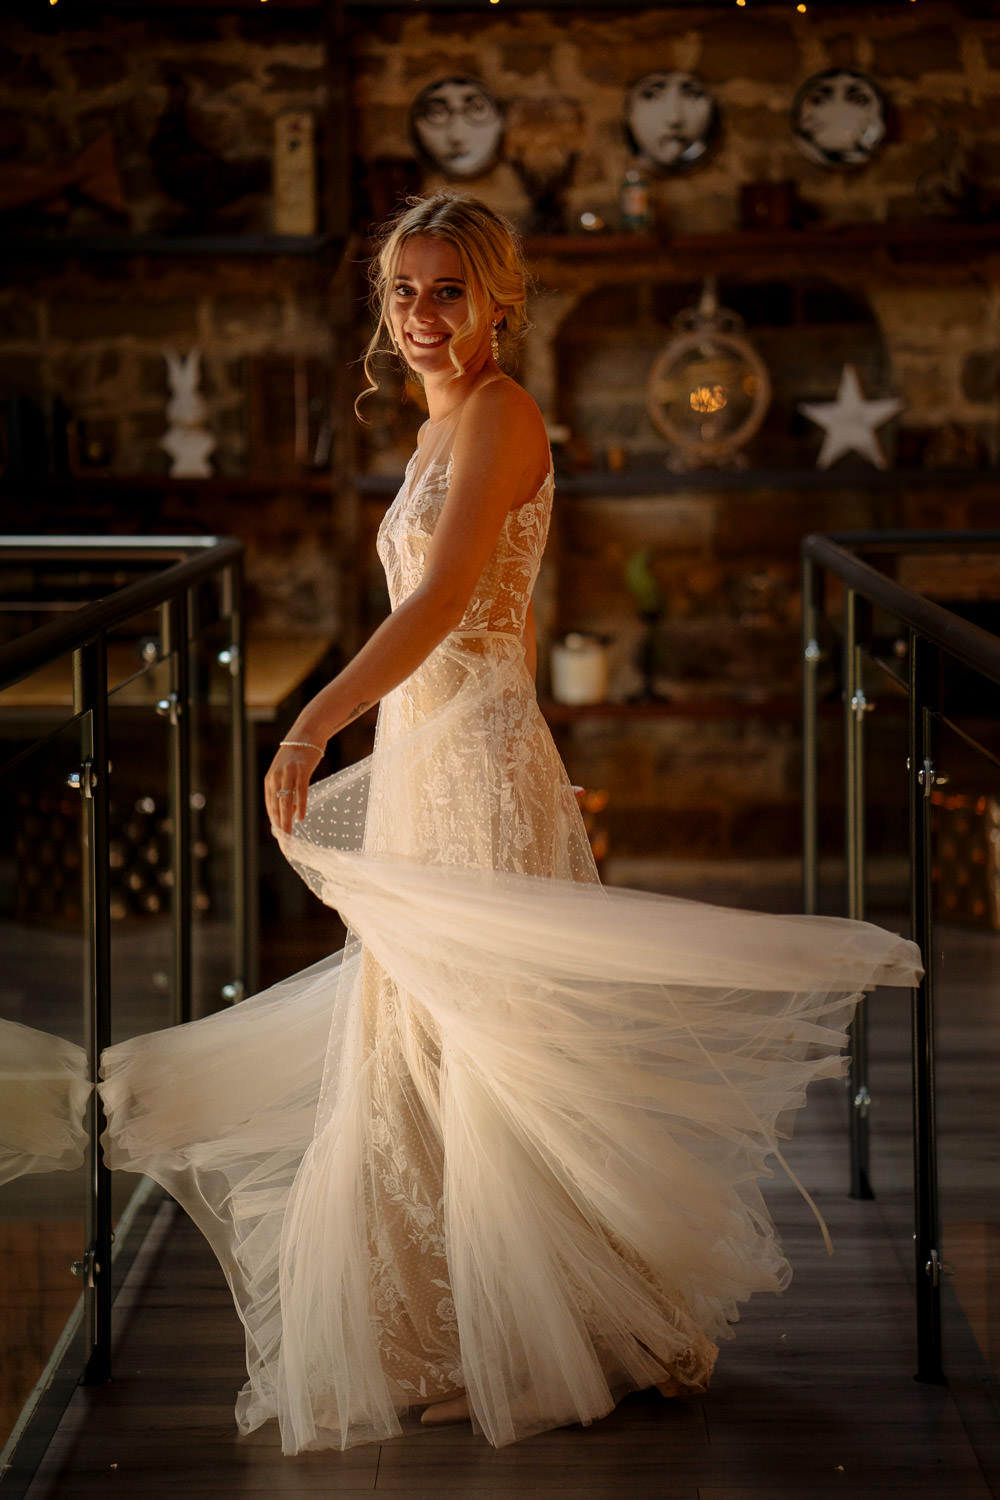 BHLDN Dress Gown Bride Bridal Tulle Lace Train Industrial Barn Wedding Toast Of Leeds